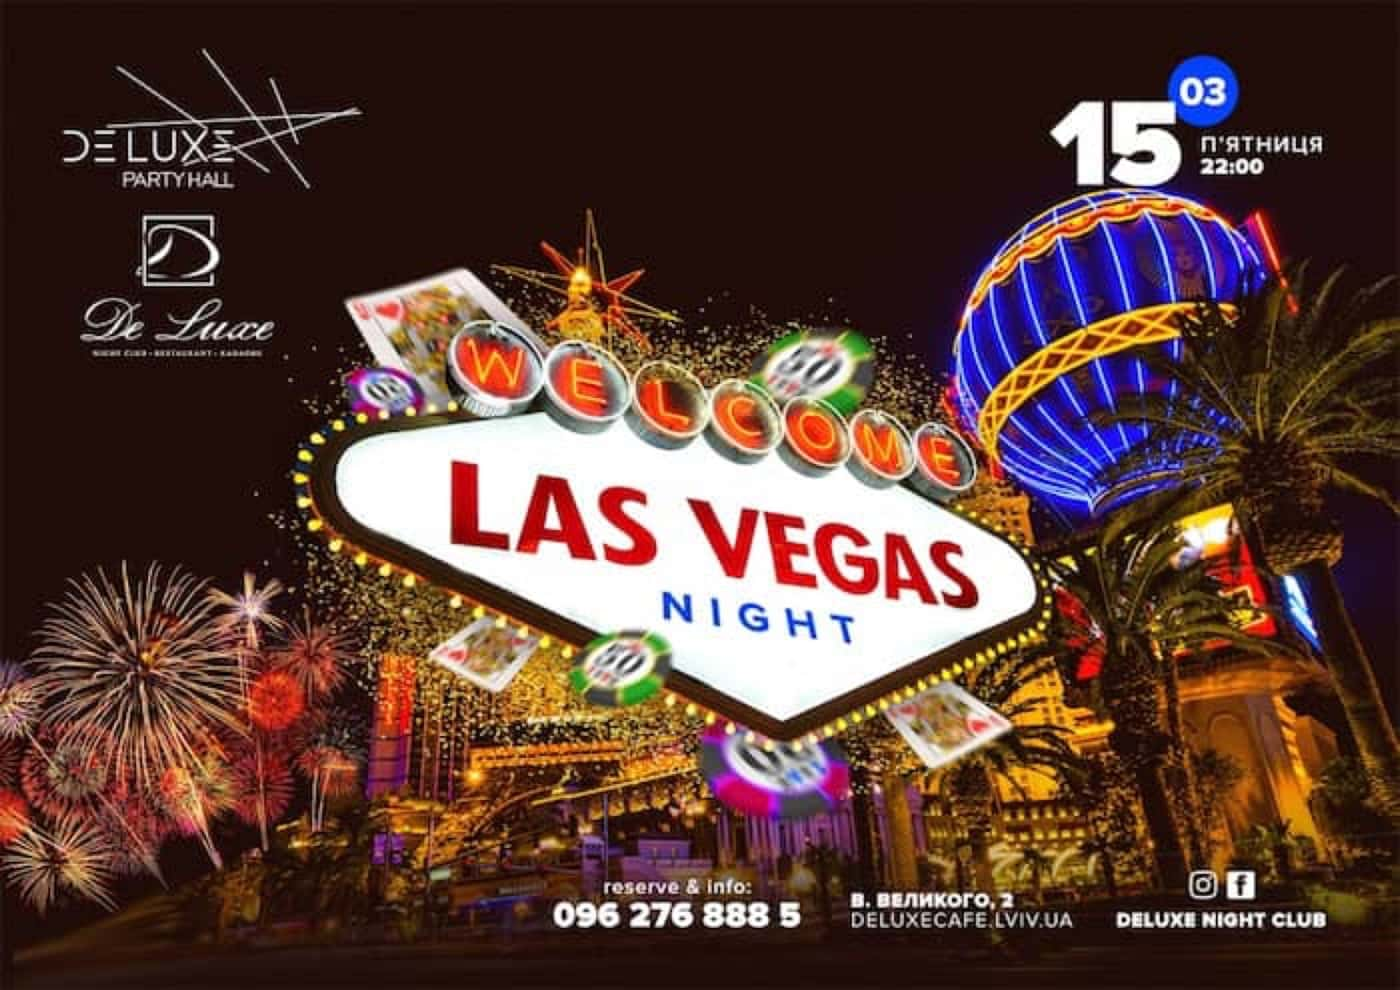 Welcome Las Vegas Night